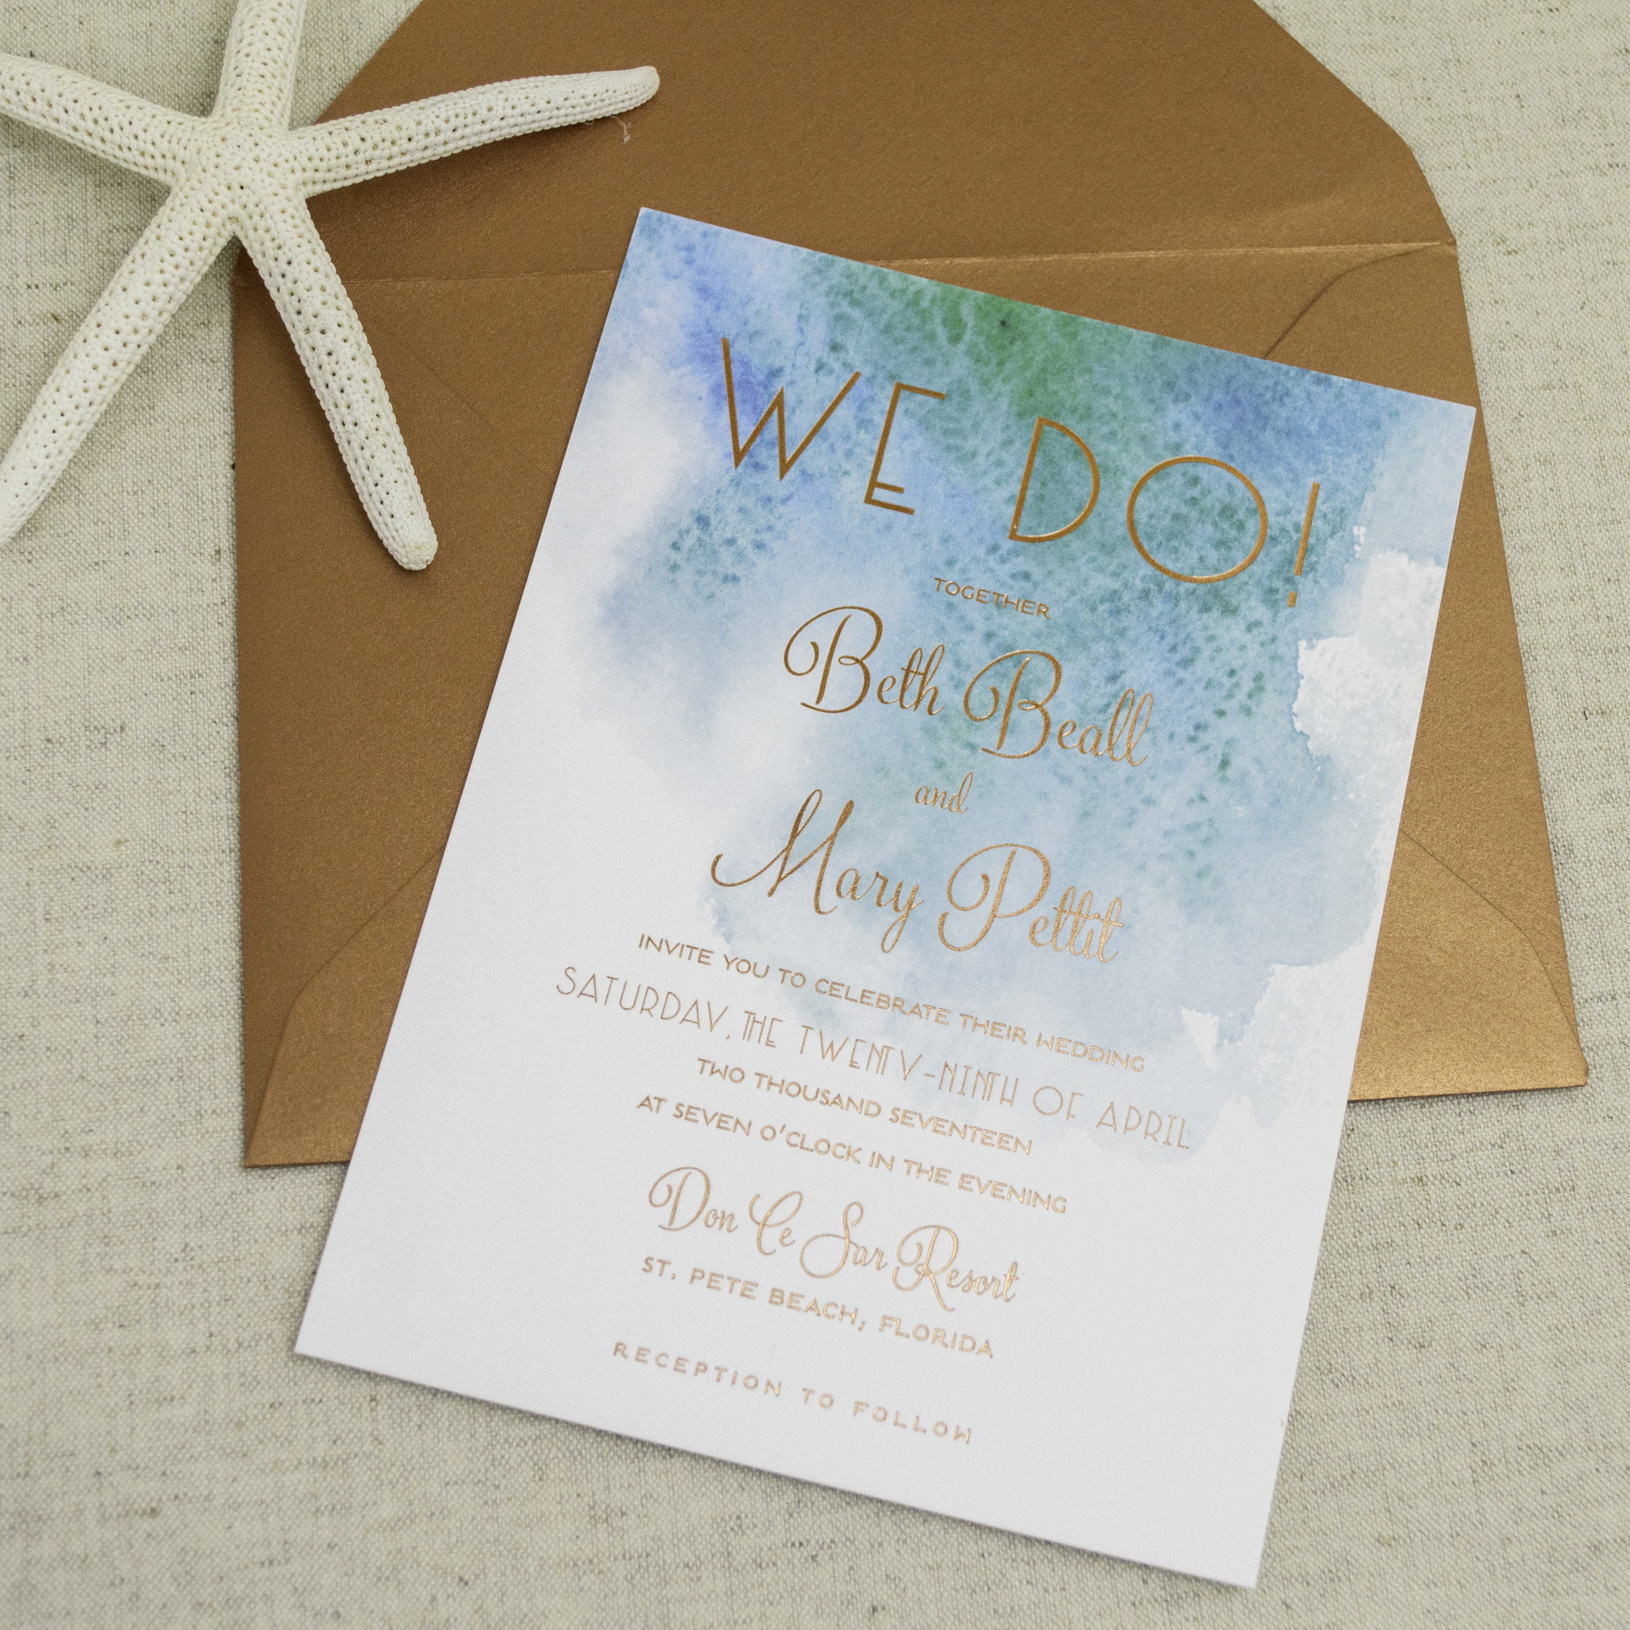 Modern Beach Themed Wedding Invitations - A&P Designs